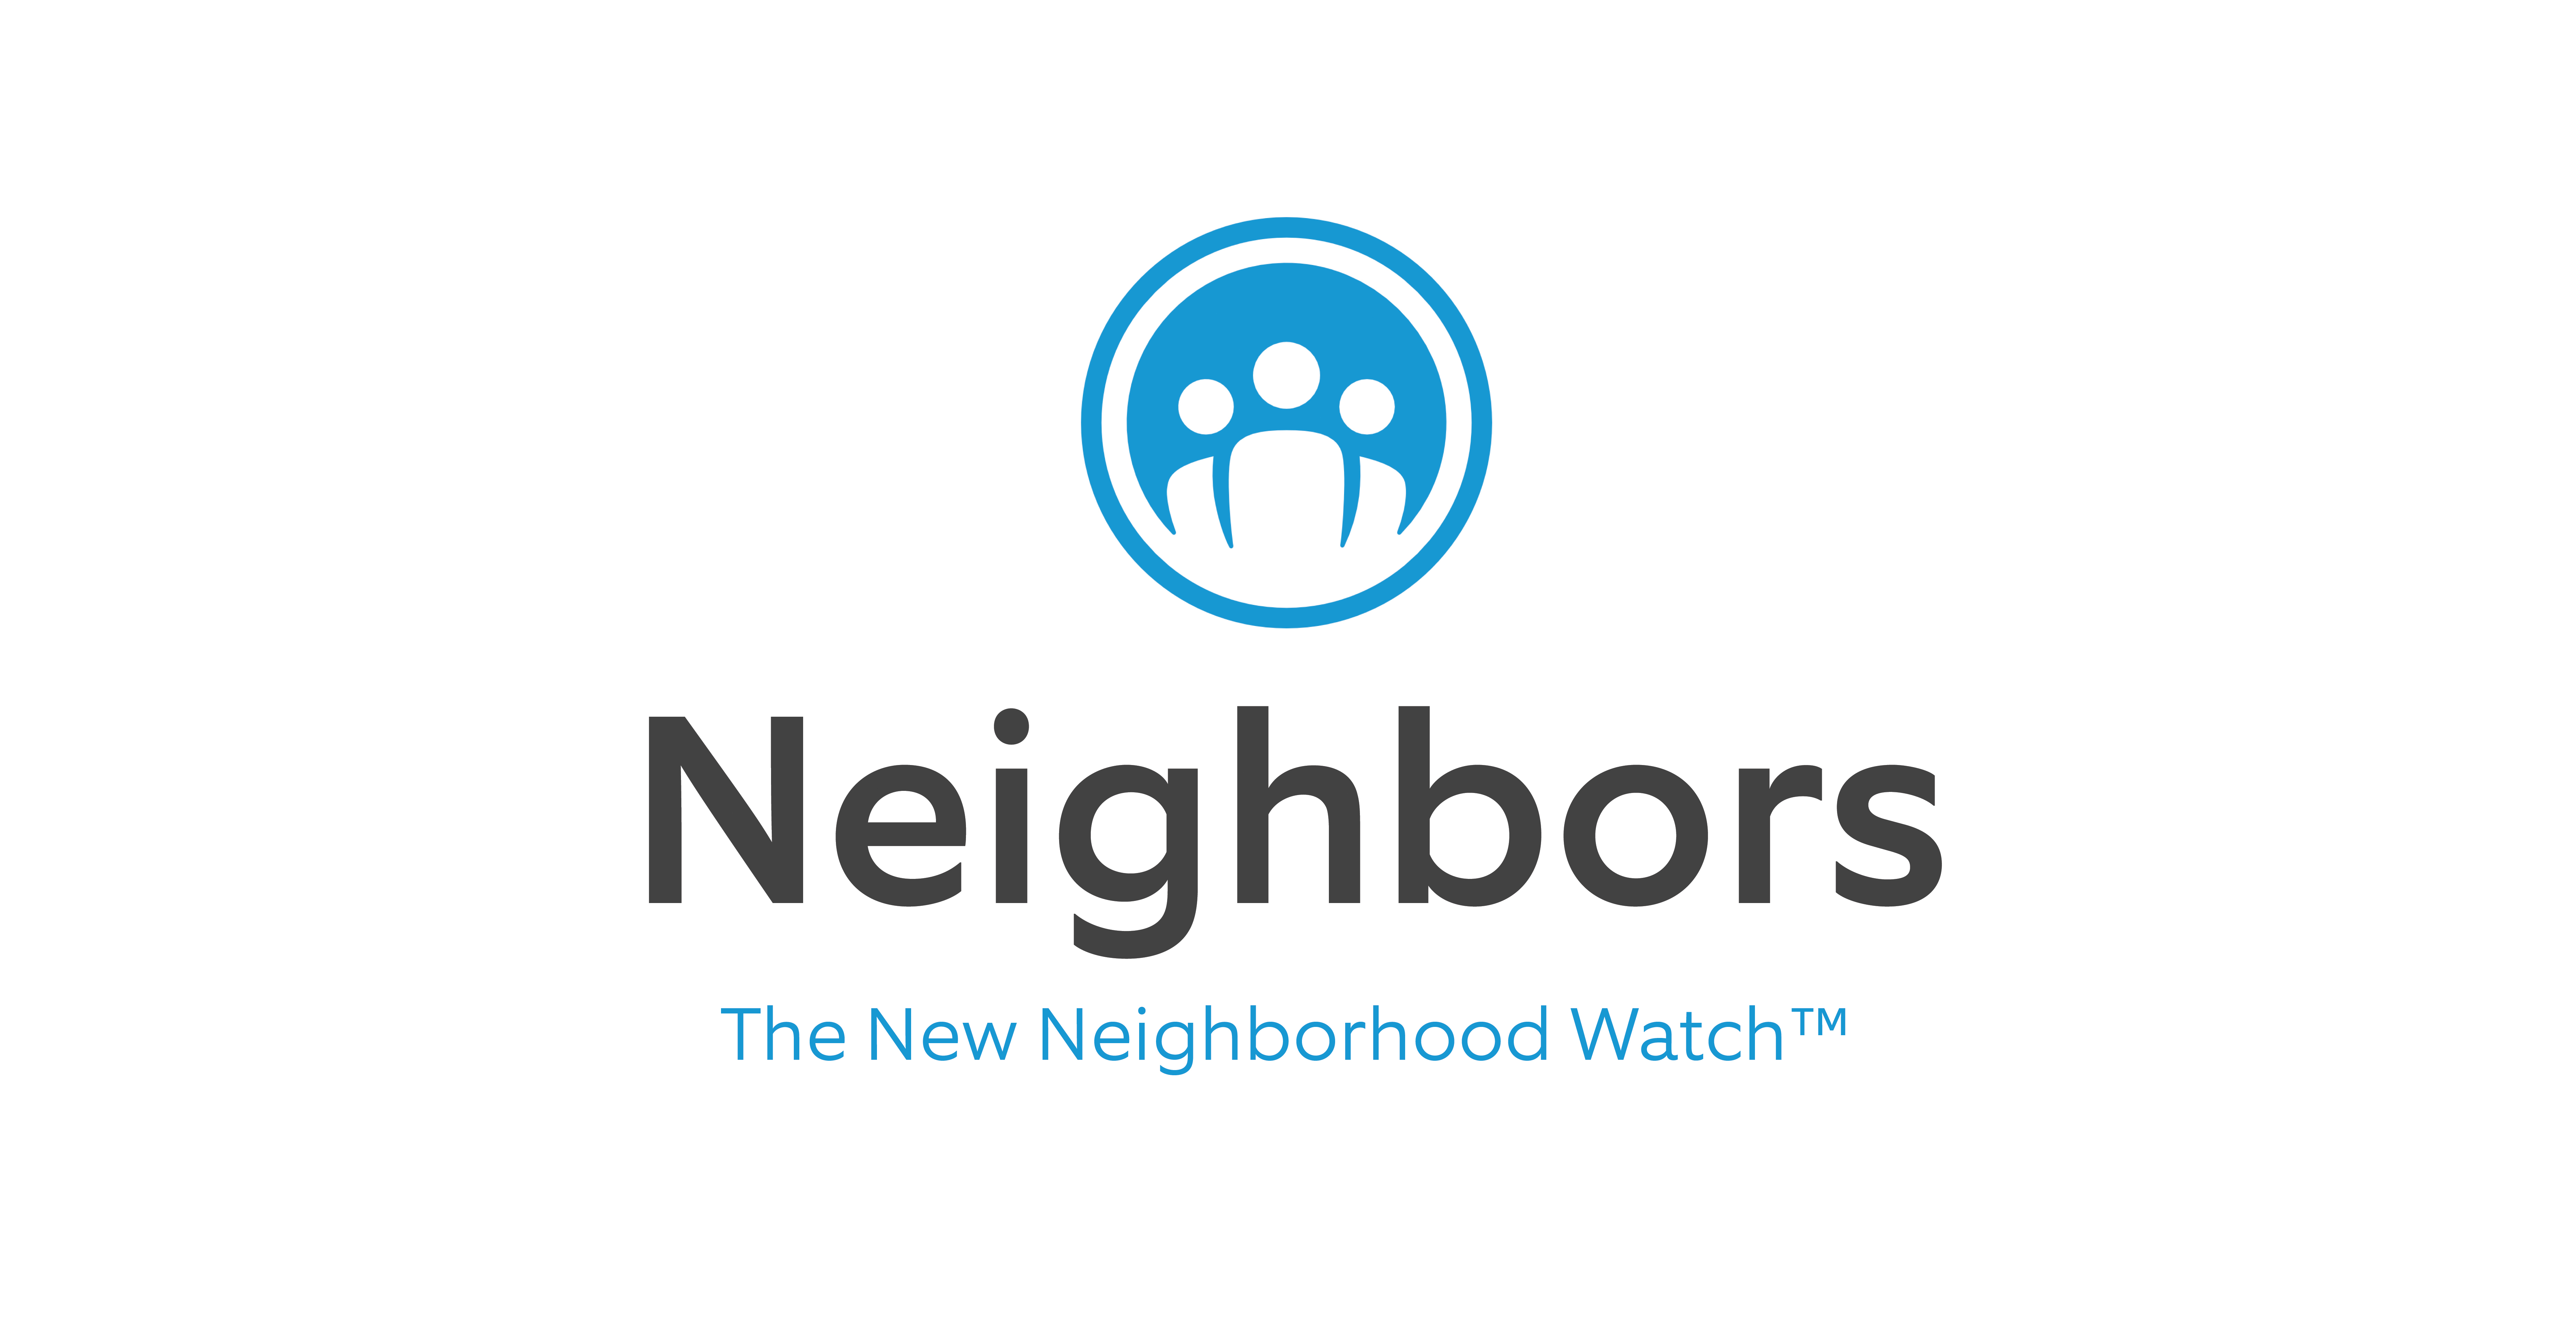 Neighbors by Ring is a neighborhood watch app that provides